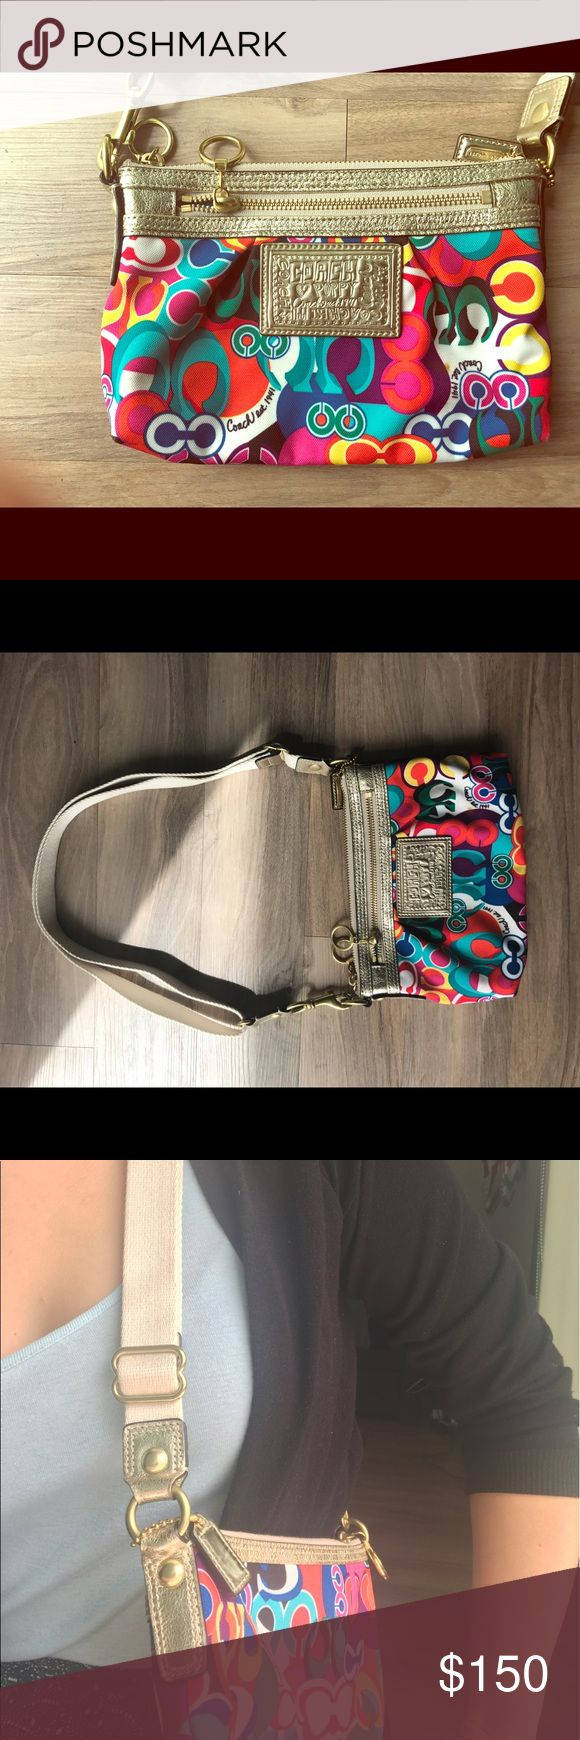 Coach Poppy Pop C Mini Swingback Crossbody (rare) Limited edition Poppy Pop P print rainbow coach purse. Brand new and never used, but without tags. I'm just not a rainbow sort of gal. I couldn't find a picture of the original listing since it's a bit retro now. Great spring purse. Coach Bags Crossbody Bags